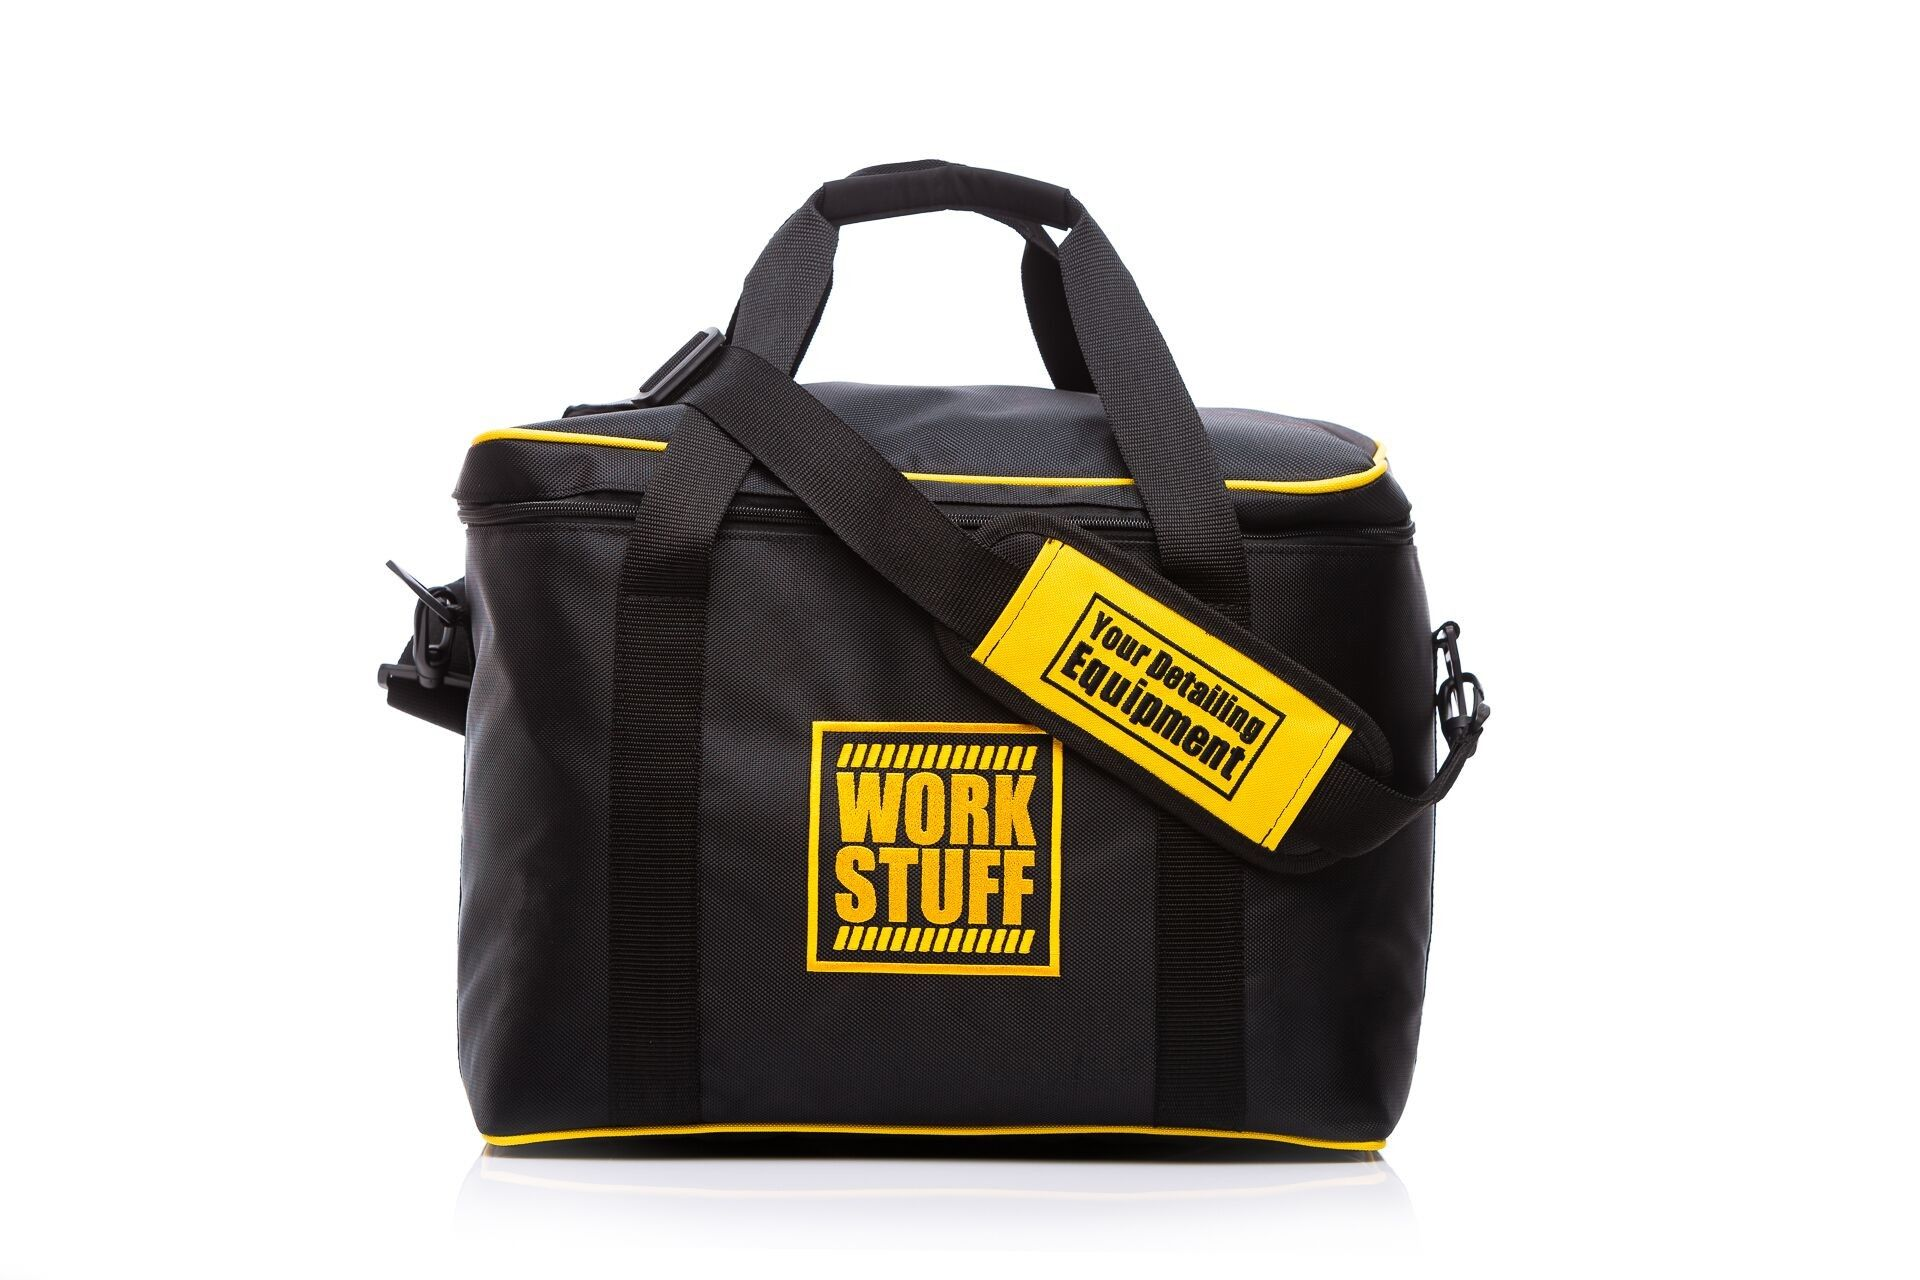 Work Stuff Work Bag Bolsa de transporte de materiales